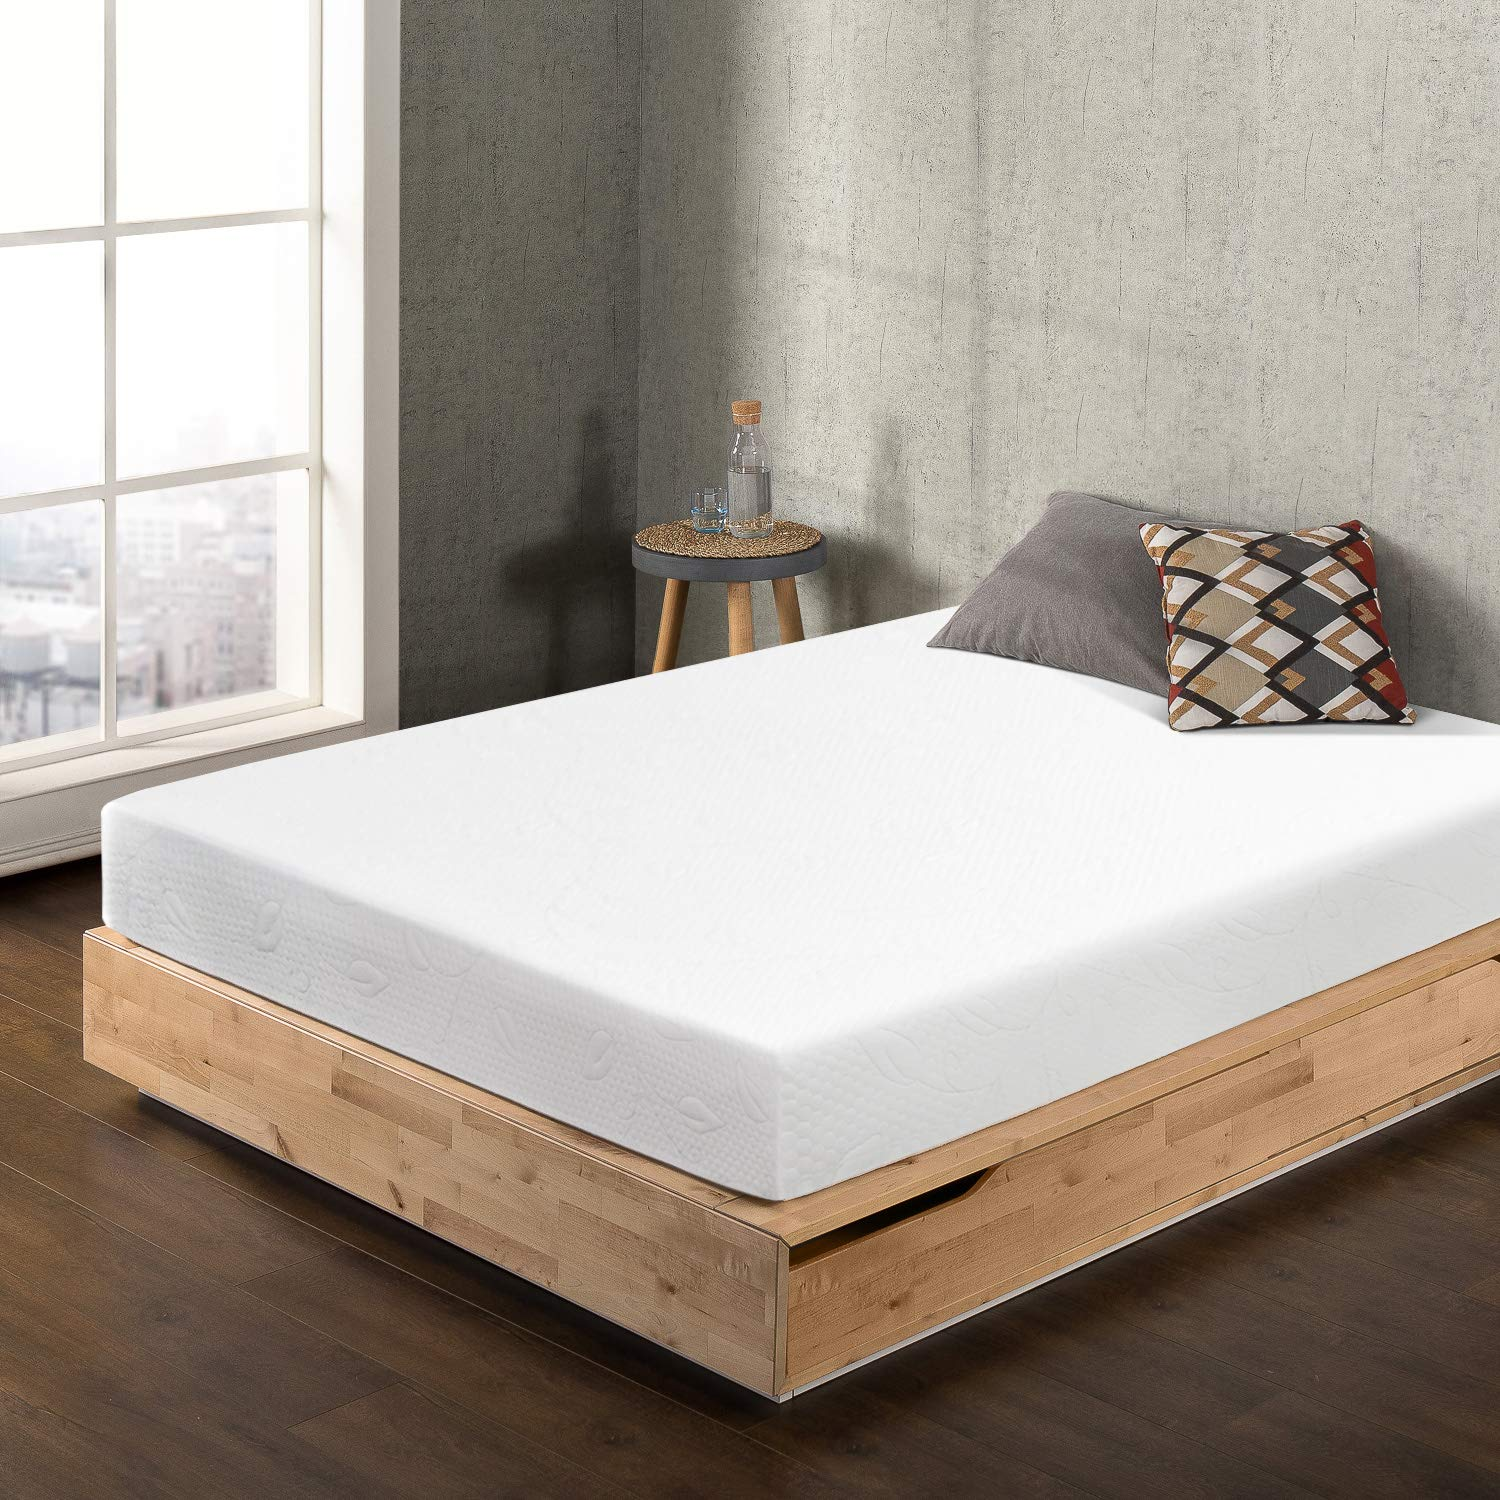 Best Price Mattress BPP-AFM-8SQ 8'' Air Flow Memory Foam, Short Queen, White Mattress